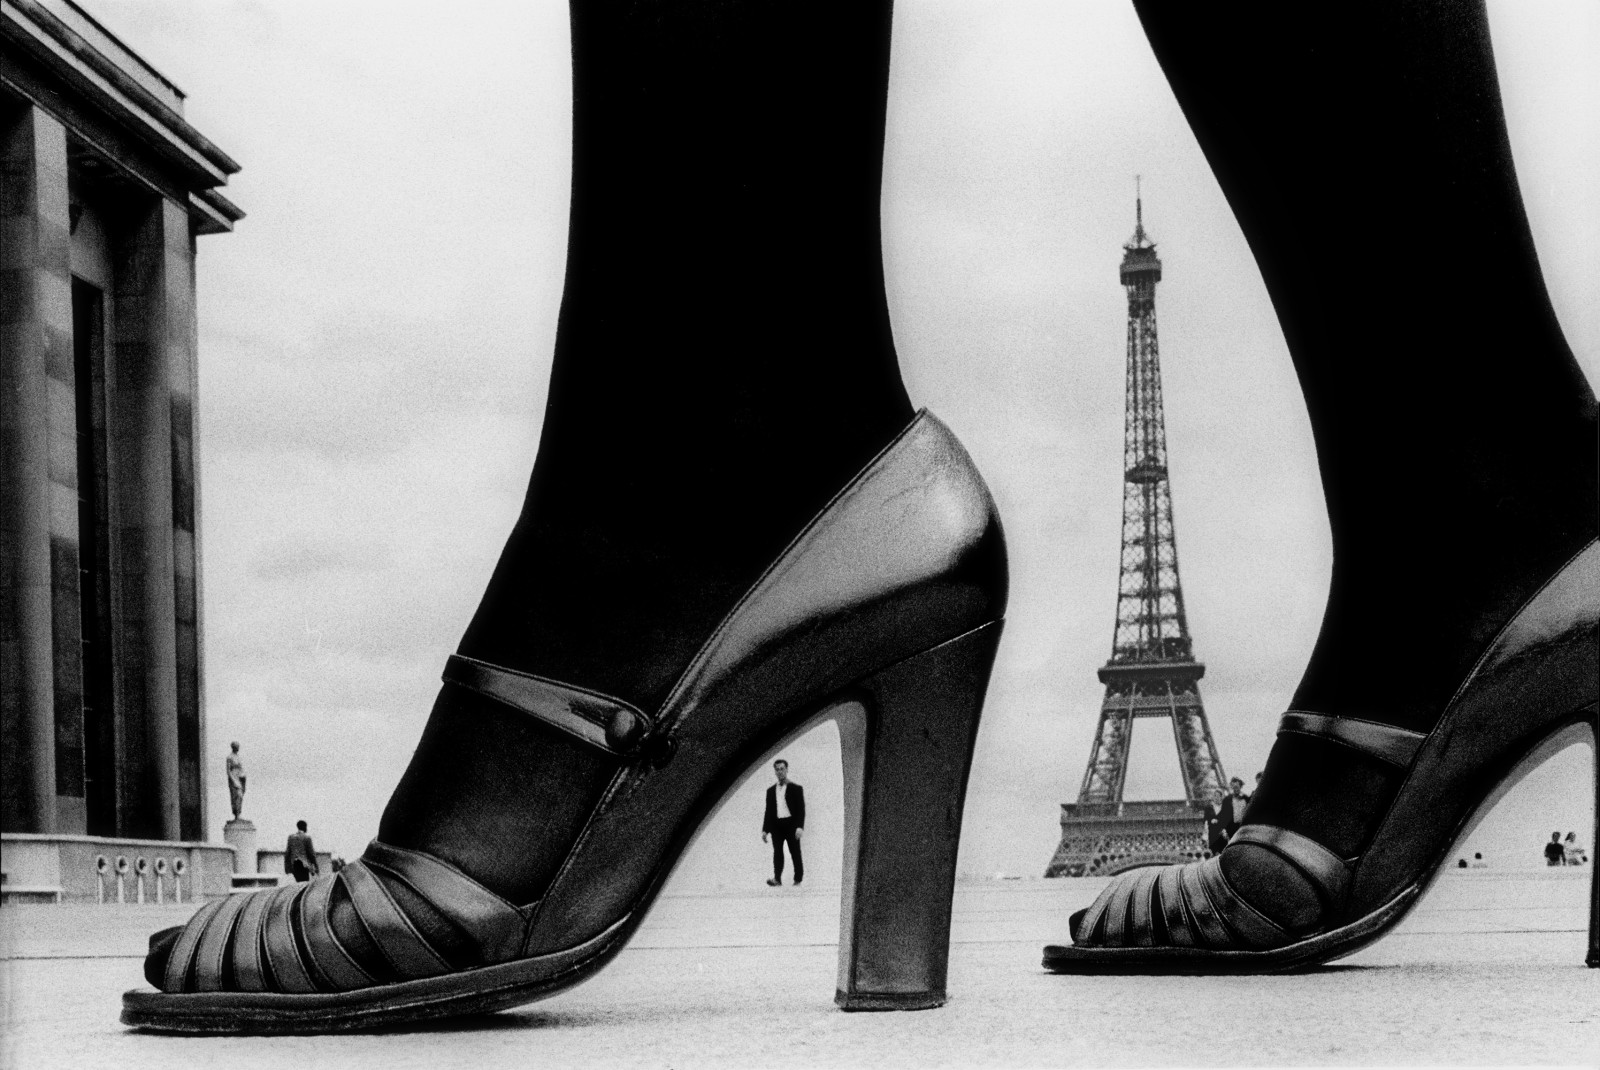 Paris, Shoe and Eiffel Tower A, 1974